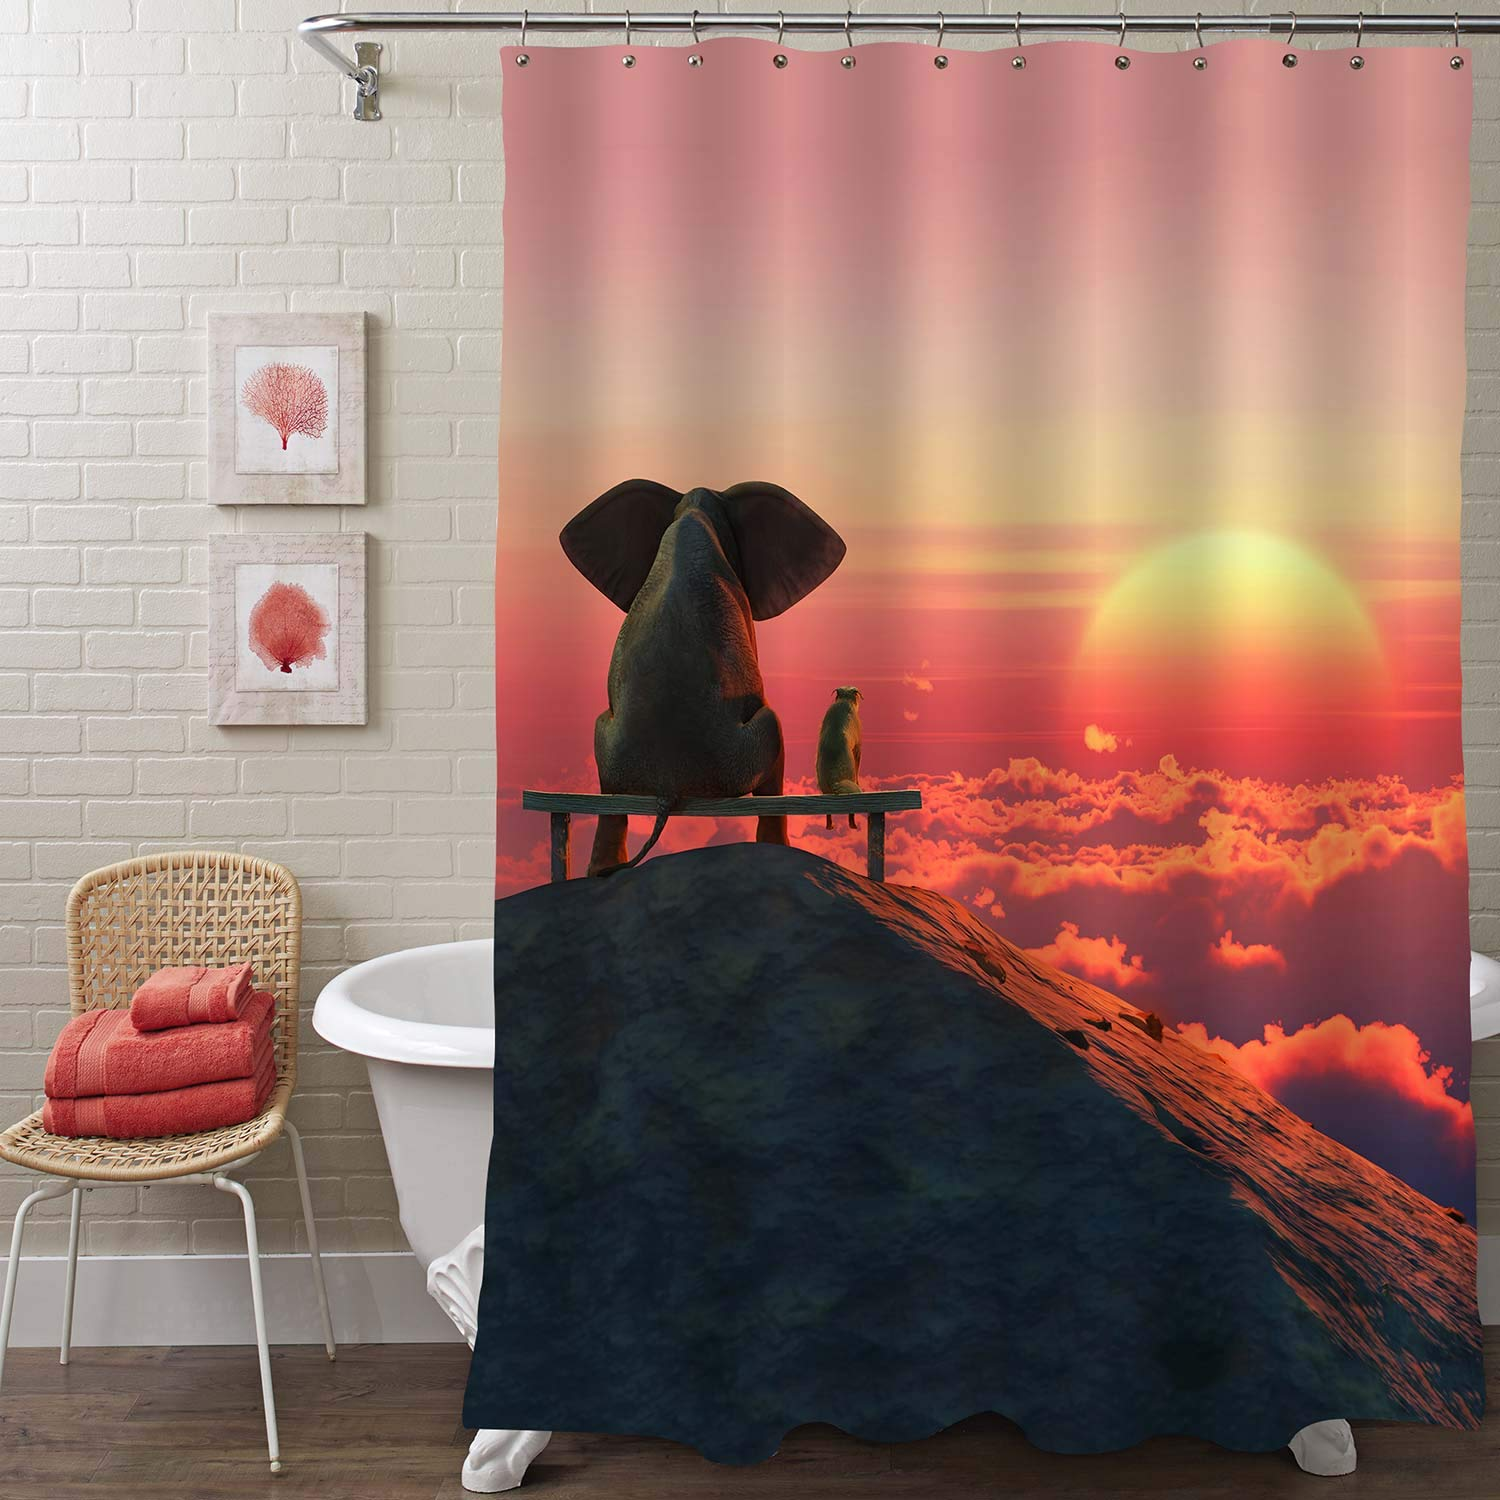 MitoVilla Elephant and Dog Sit on a Mountain Top Look at Sunrise Shower Curtain for Novelty Kid's Bathroom Decor, Waterproof and Fabric Animal Bath Curtains, 72 x 78 inches, Red